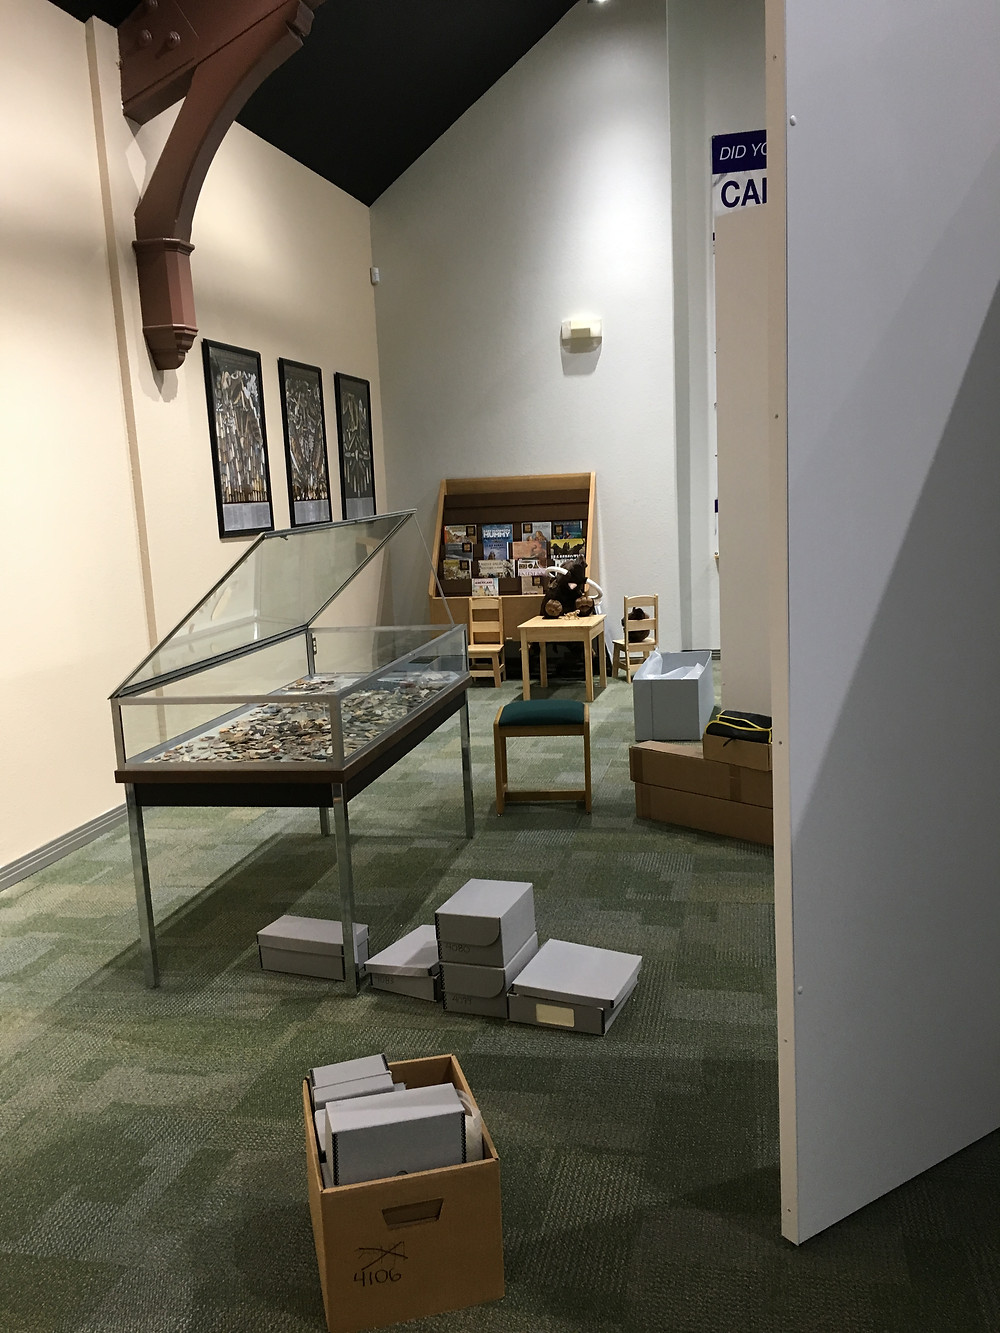 """A portion of the museum where """"projectile points"""" will be displayed. Photo by Jena Slater"""